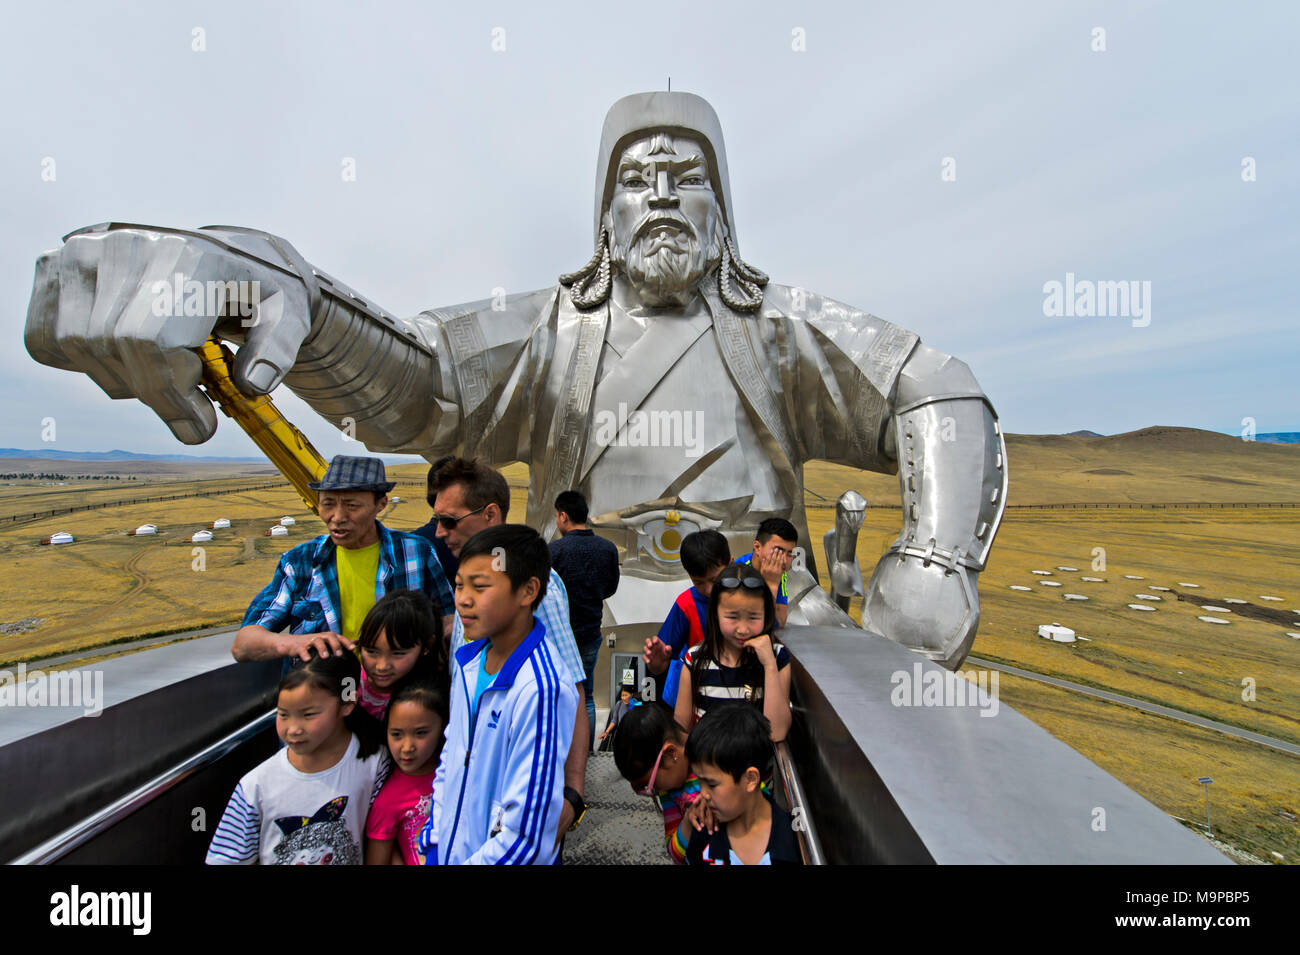 Visitors on the observation platform in the horse's head, equestrian statue of Genghis Khan, Genghis Khan Theme Park - Stock Image